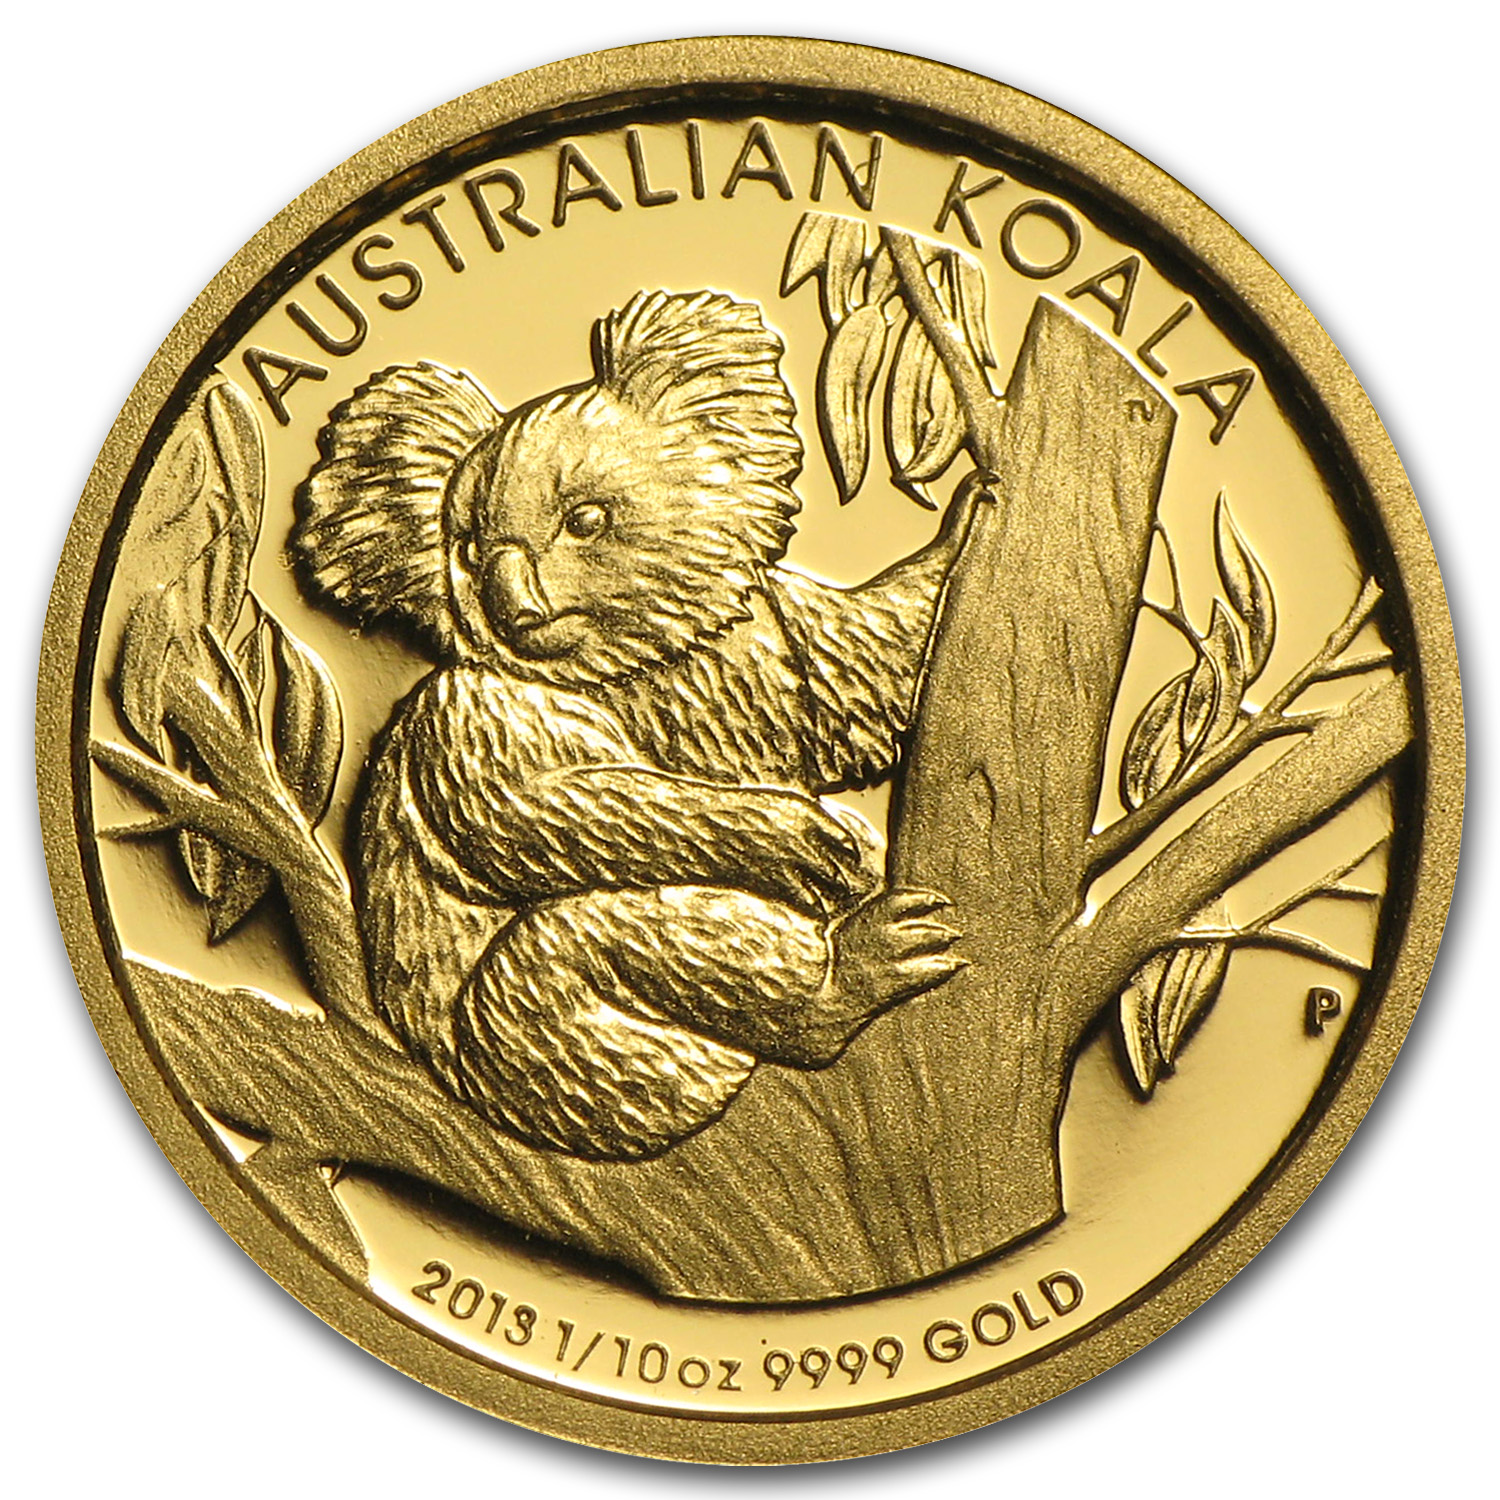 2013 1/10 oz Australian Gold Proof Koala